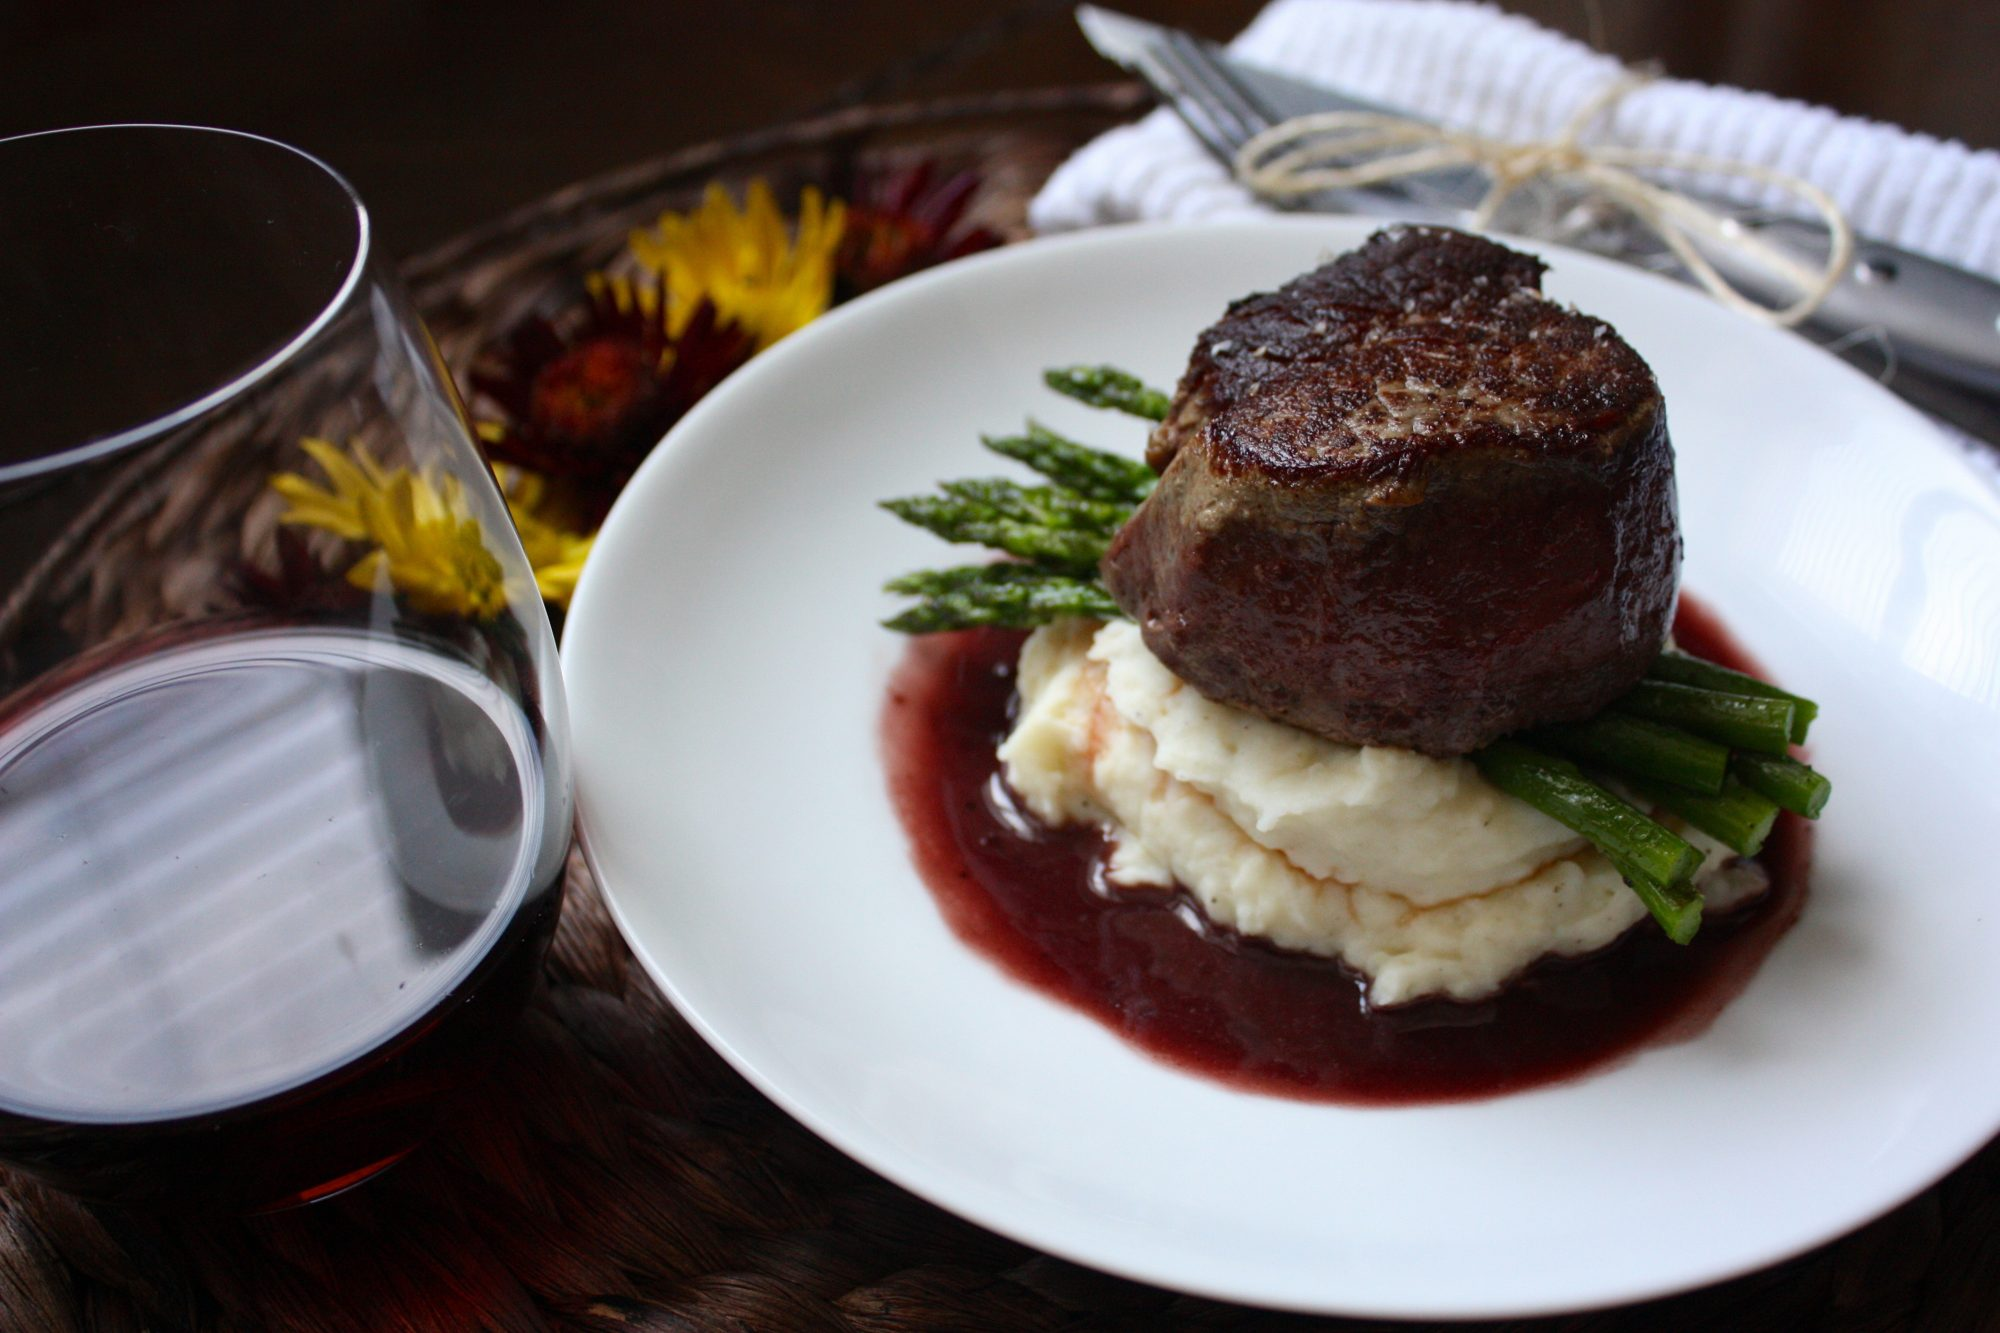 filet-of-beef-with-red-velvet-pan-sauce-roasted-asparagus-garlic-mashed-potatoes.jpg